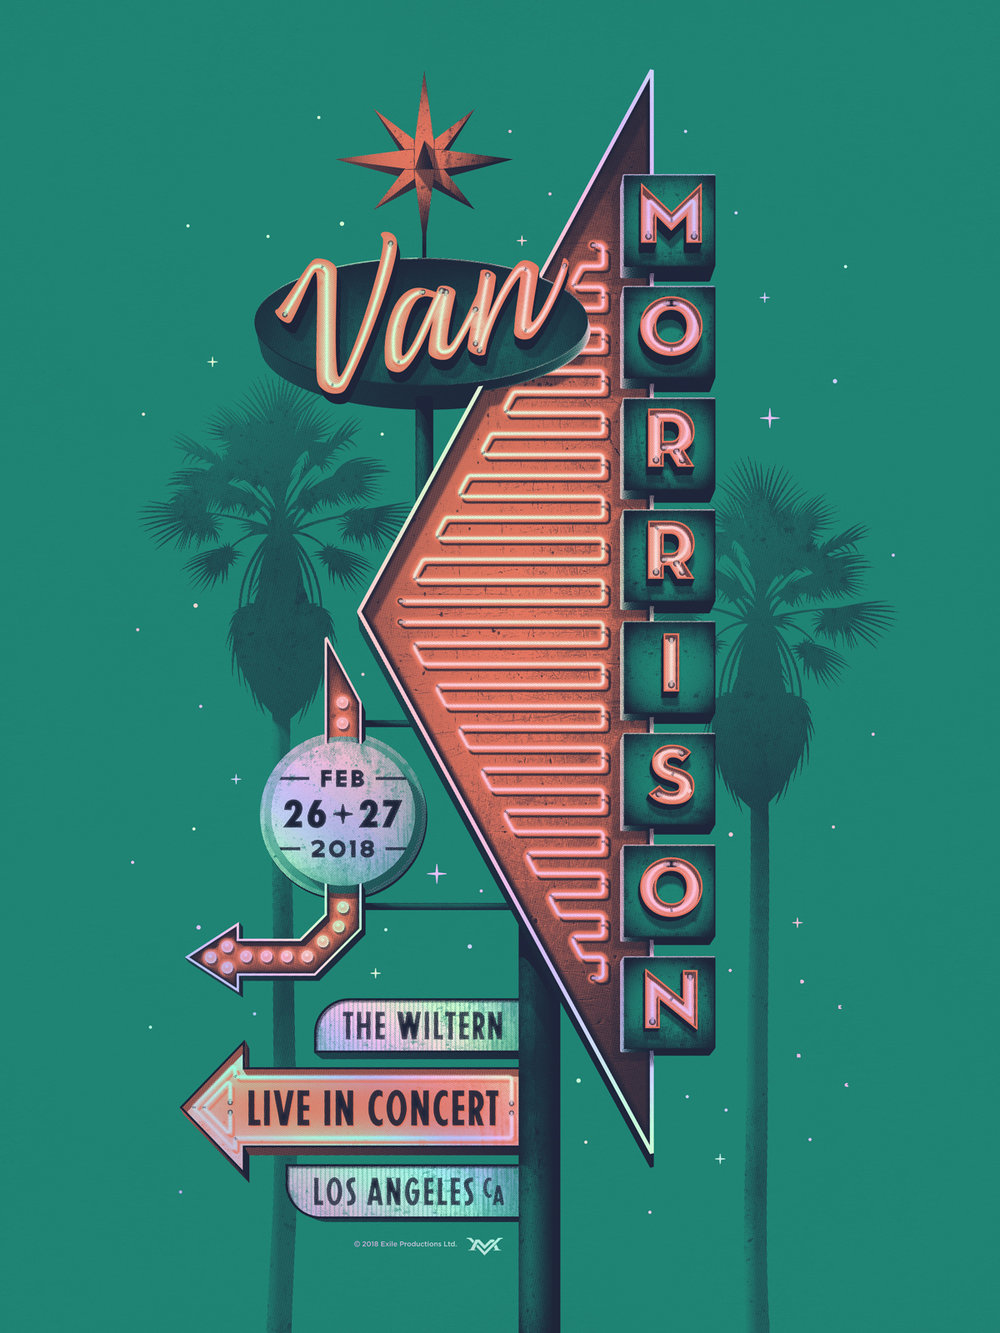 Van Morrison Poster by DKNG